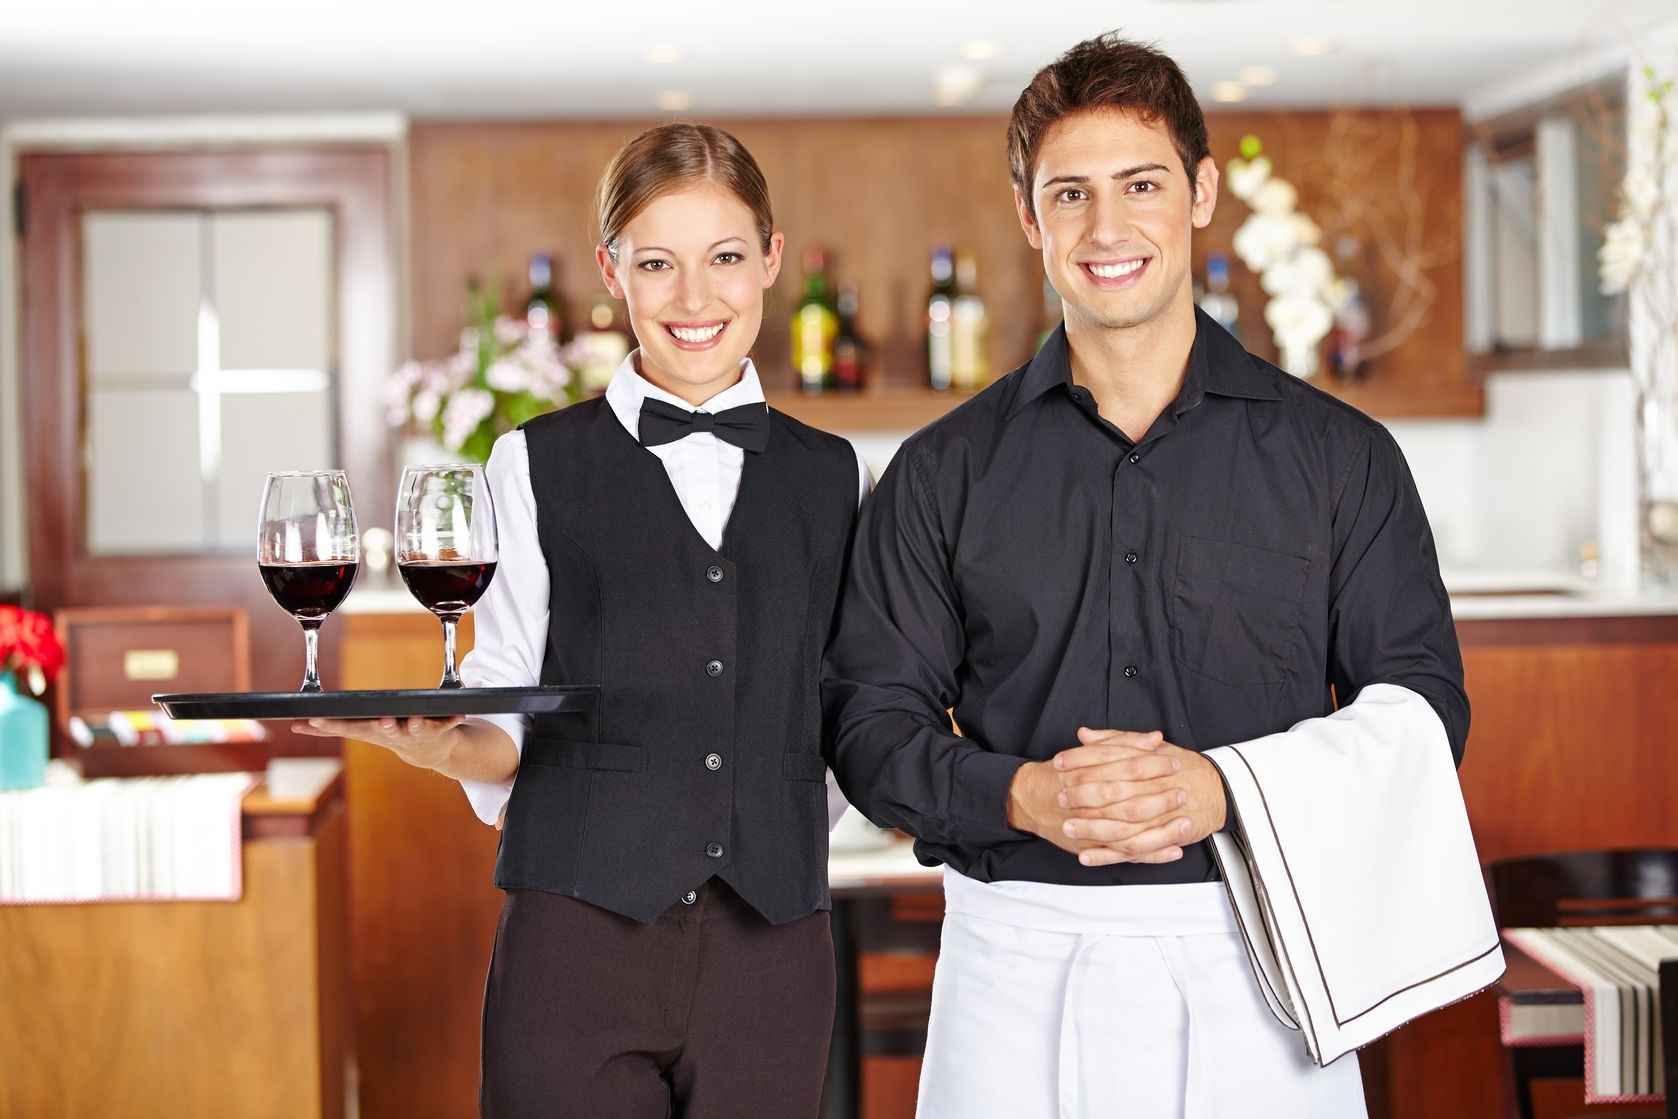 Event and Catering Business for sale in Adelaide